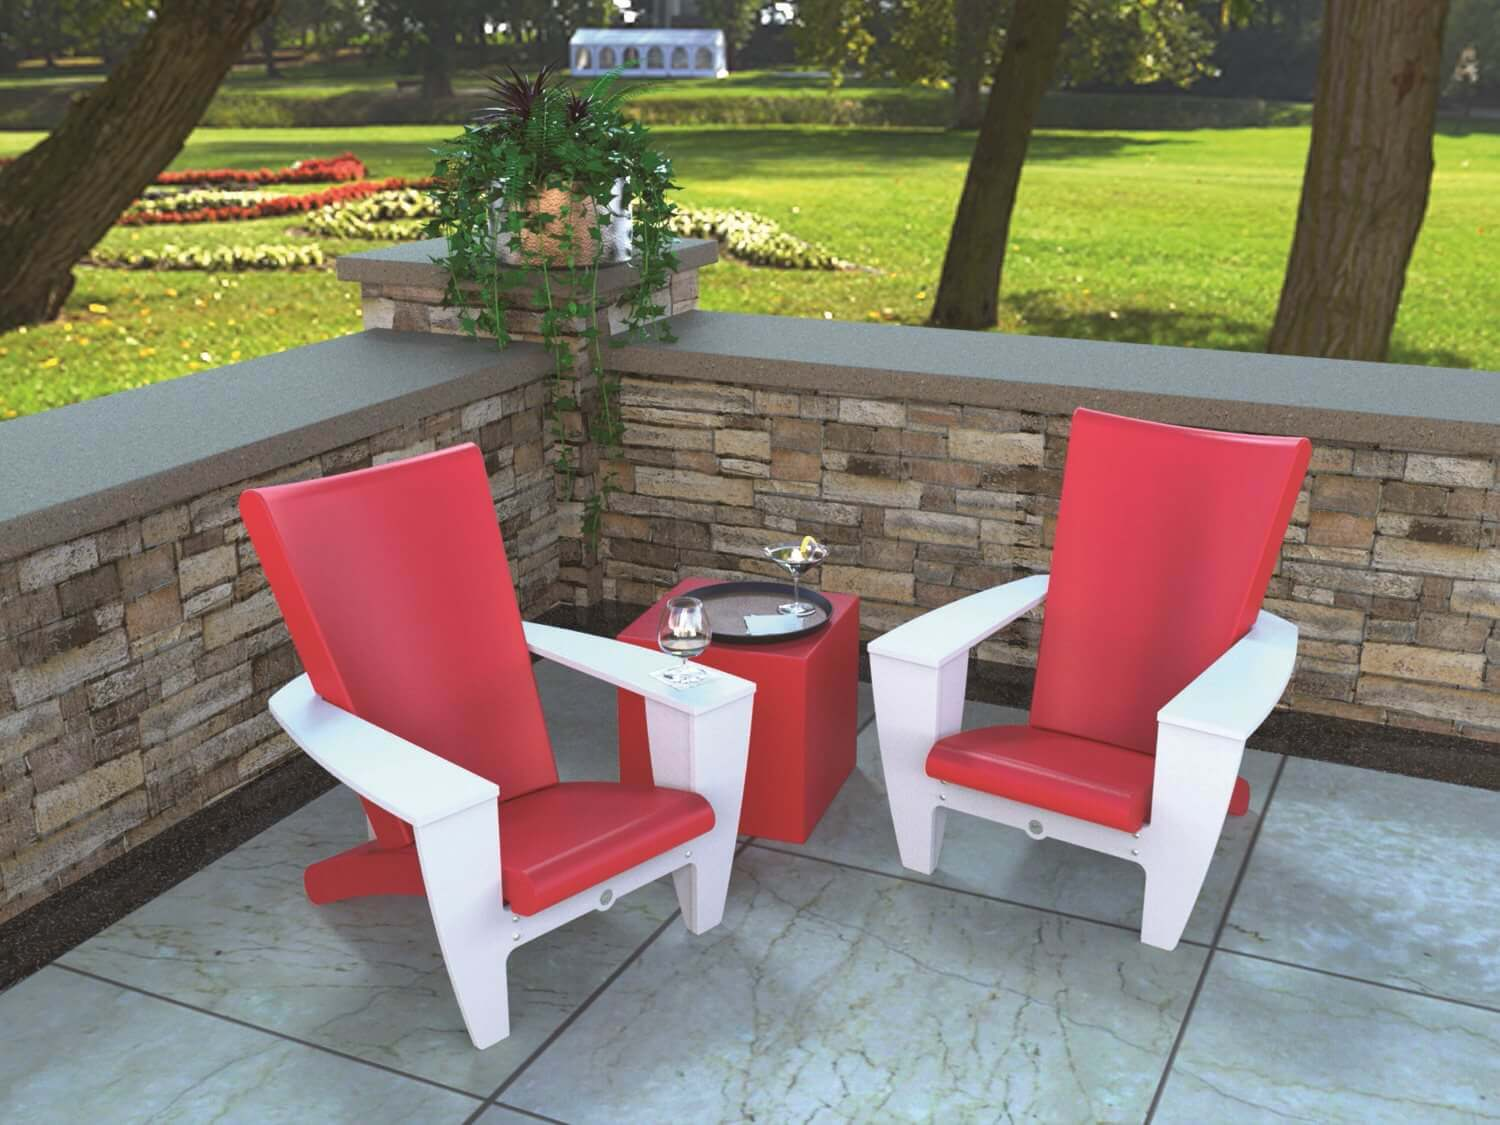 Contemporary red and white Adirondack chairs with matching small red table